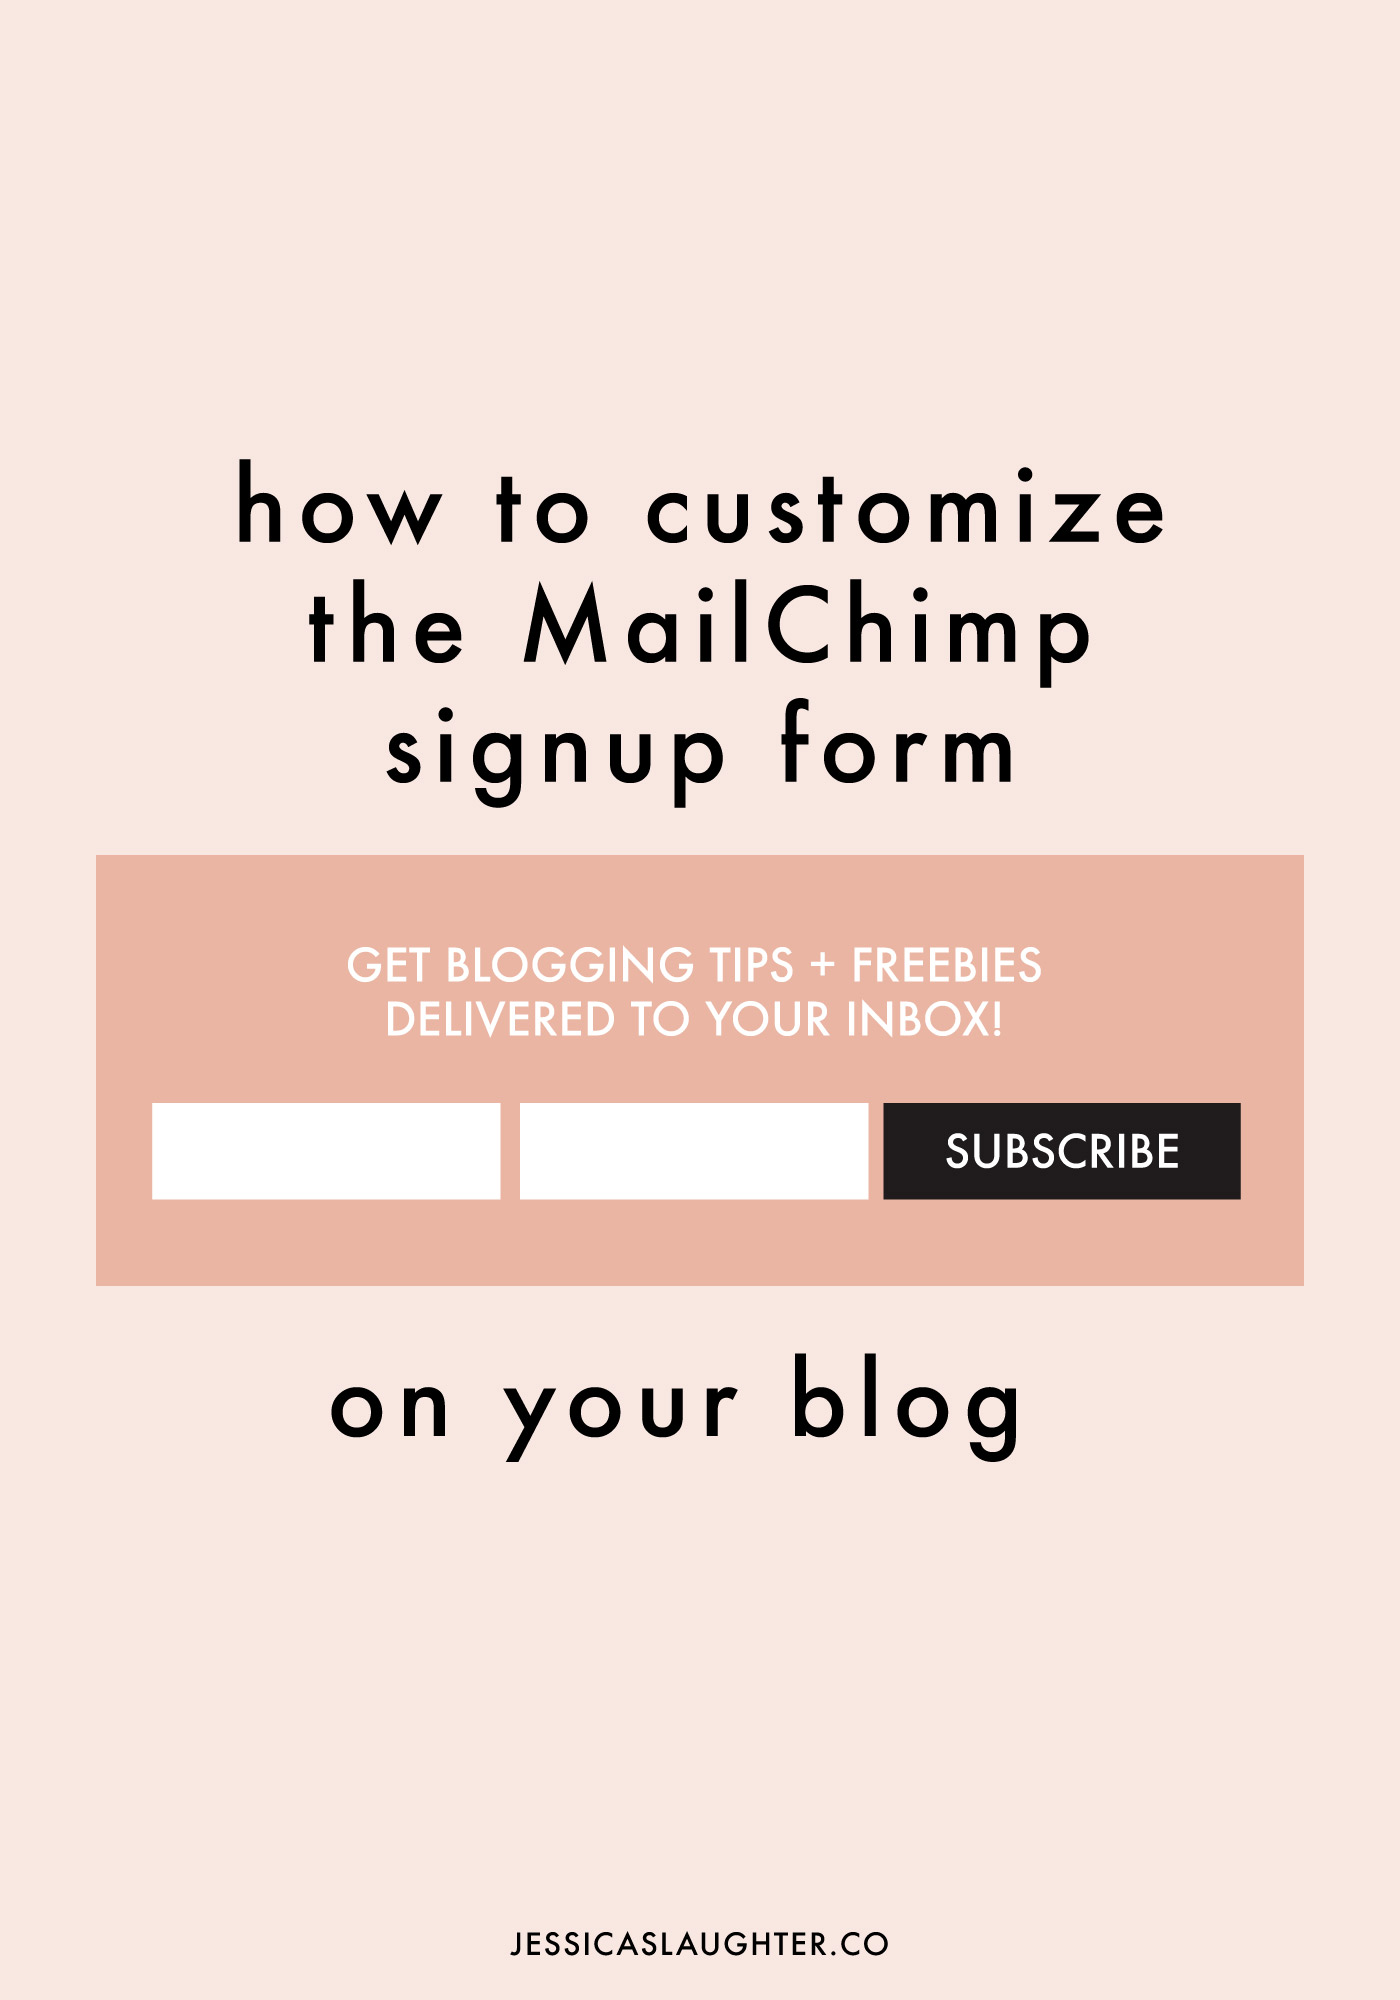 How To Customize The MailChimp Signup Form